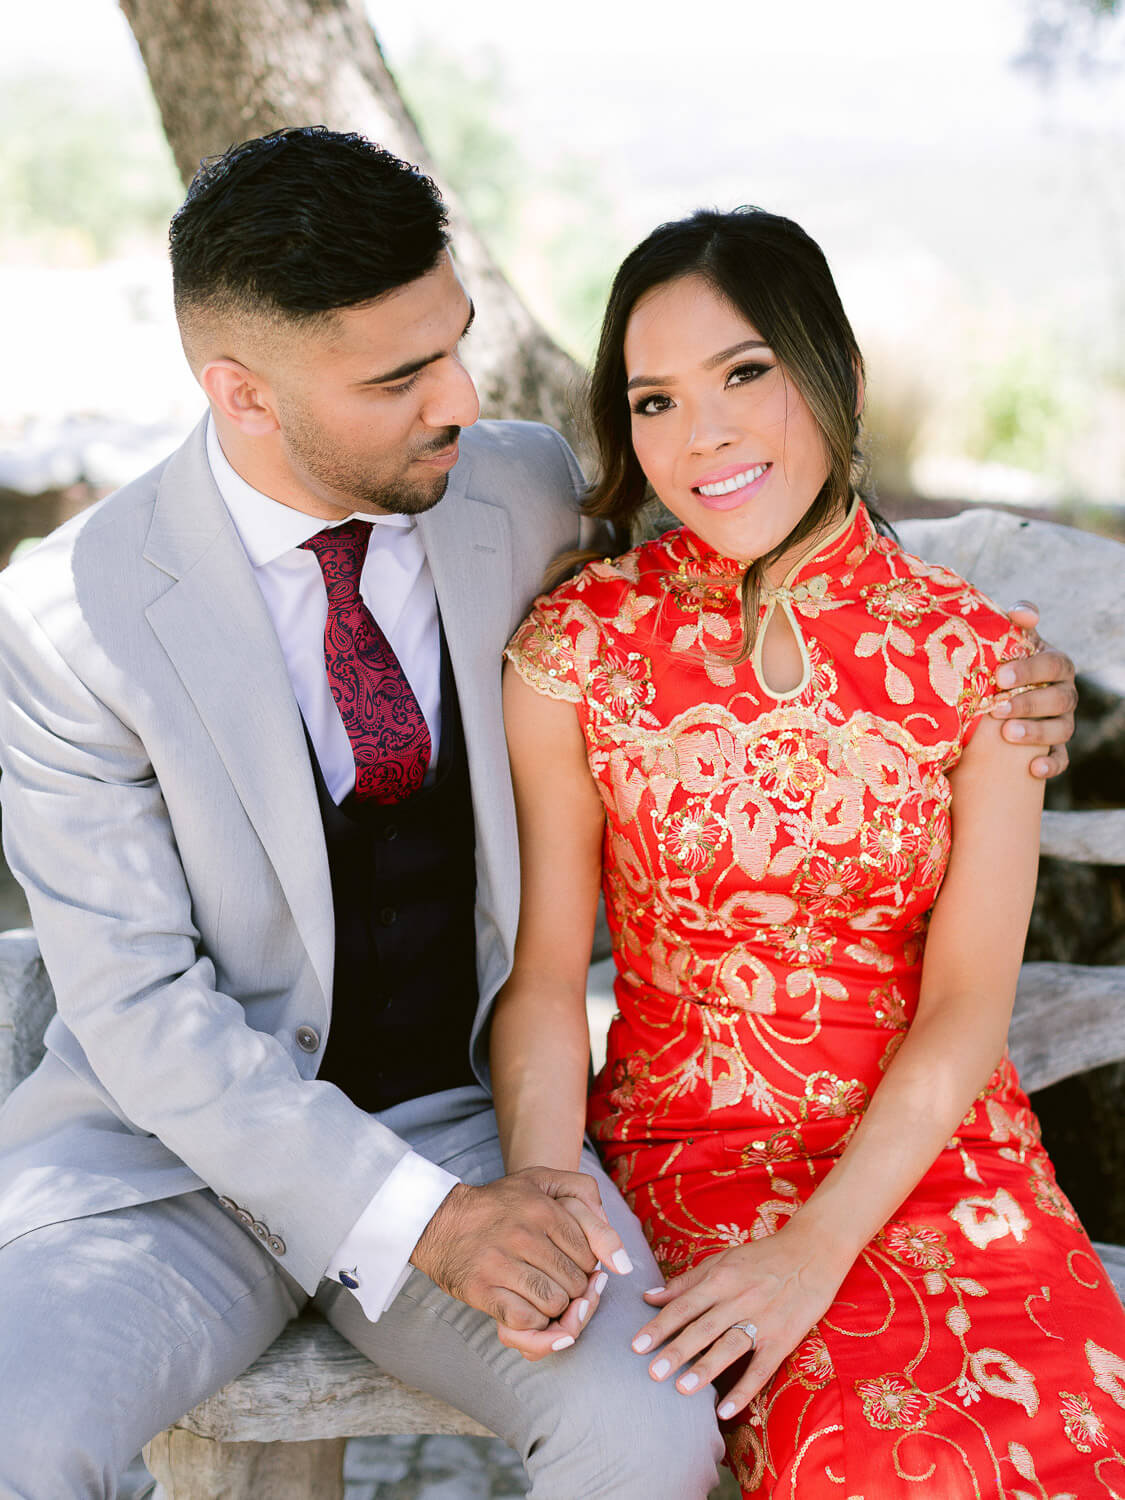 Romantic couple portrait during wedding rehearsal dinner in the Algarve by Portugal Wedding Photographer